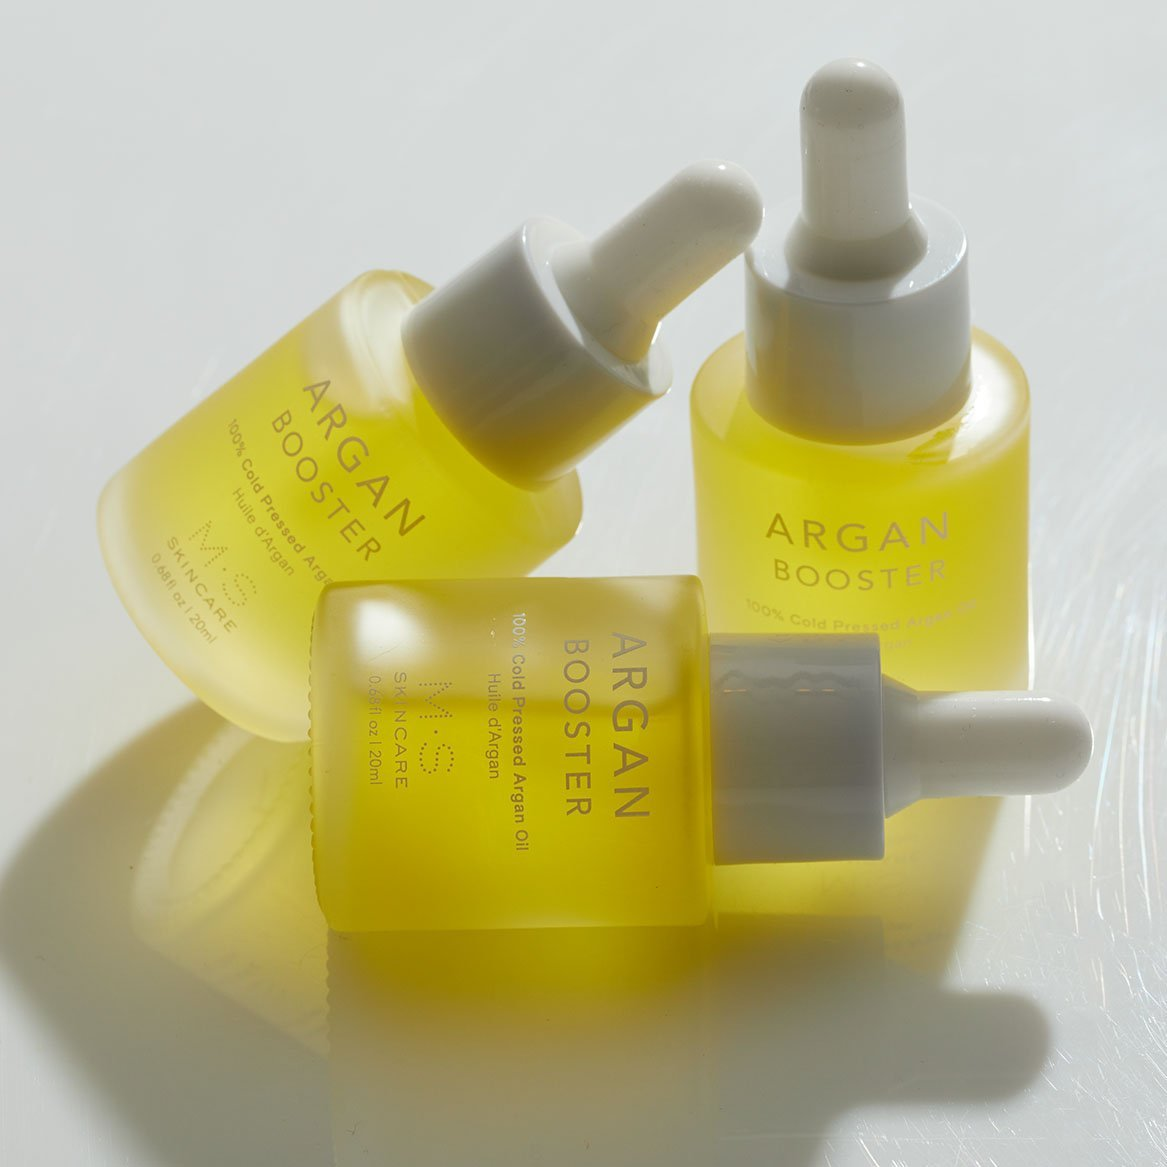 ARGAN | Booster Oil - M.S Skincare